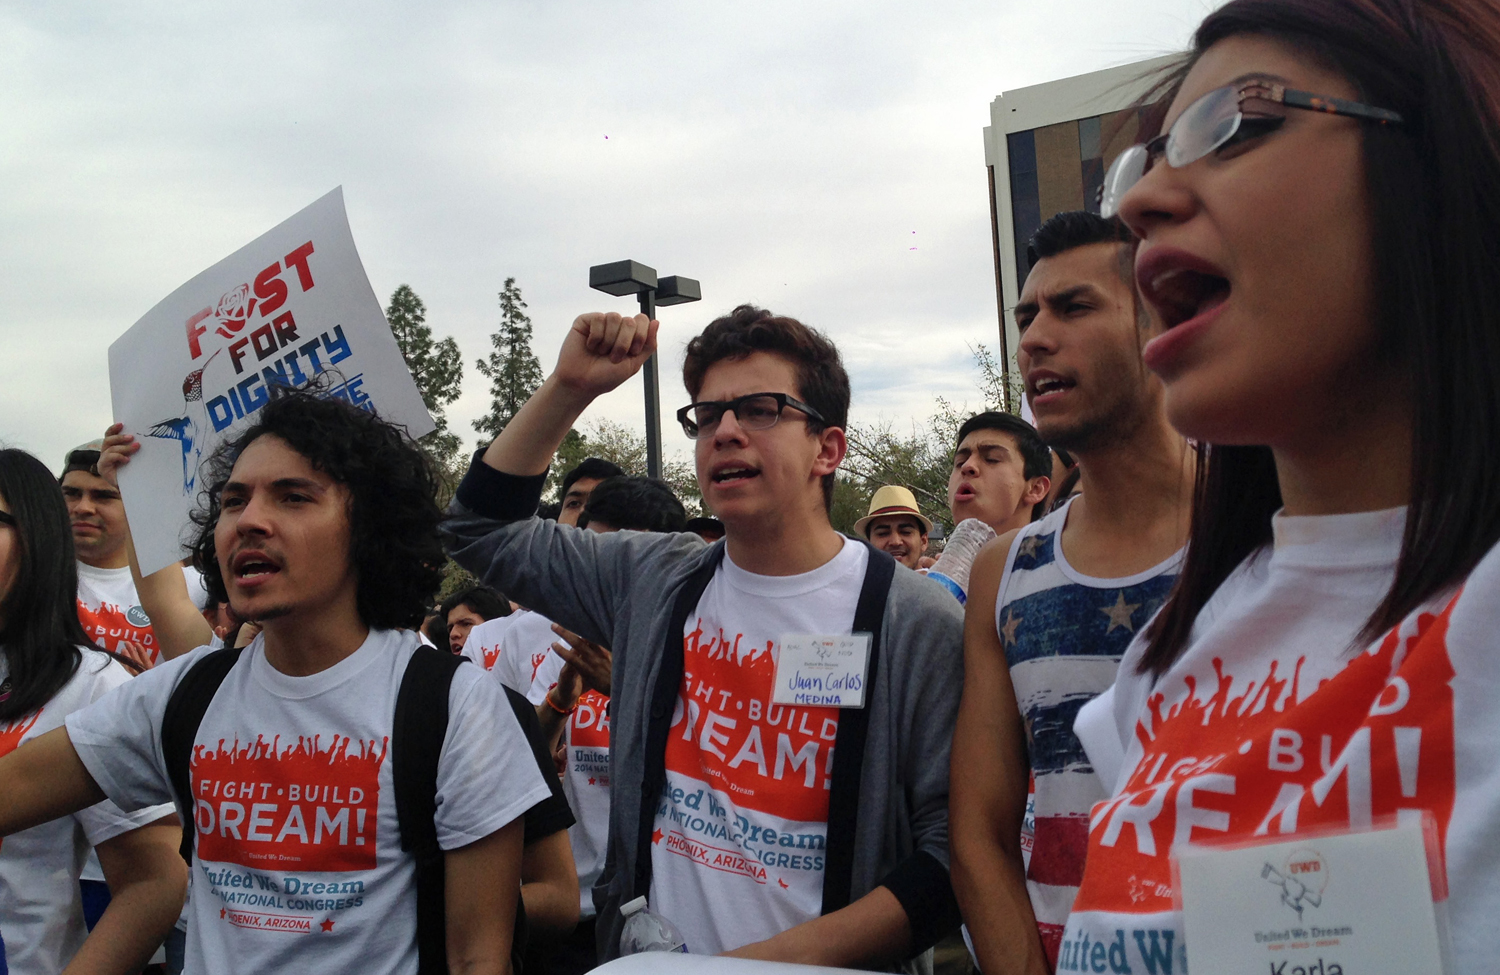 Youth-from-United-We-Dream-call-for-an-end-to-deportations